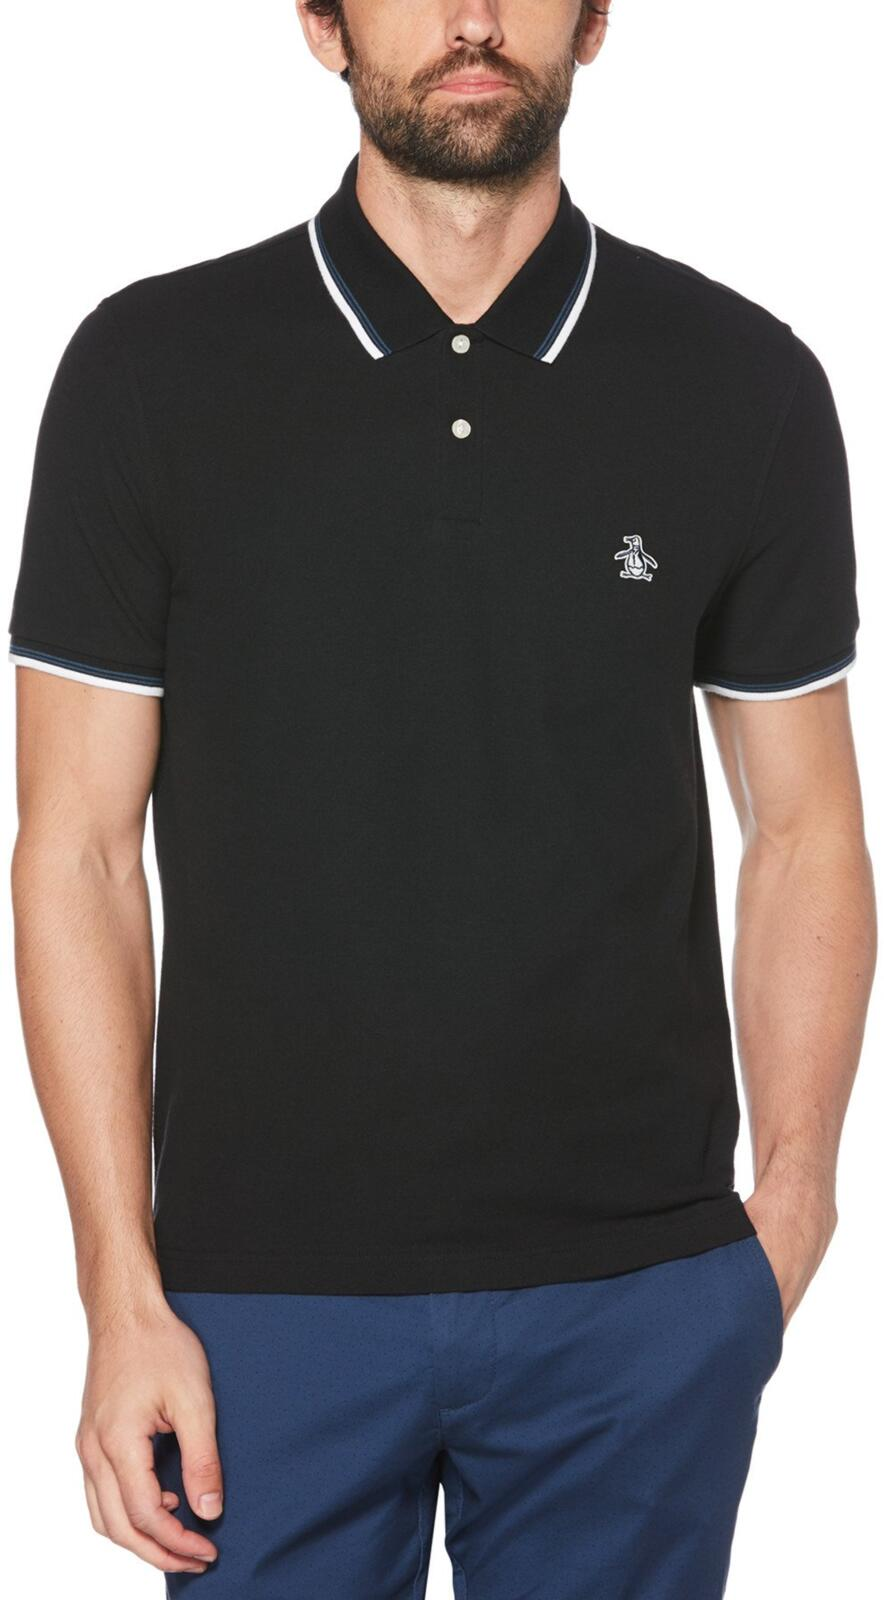 Original Penguin Sticker Pete Tipped Pique Polo Shirt Black